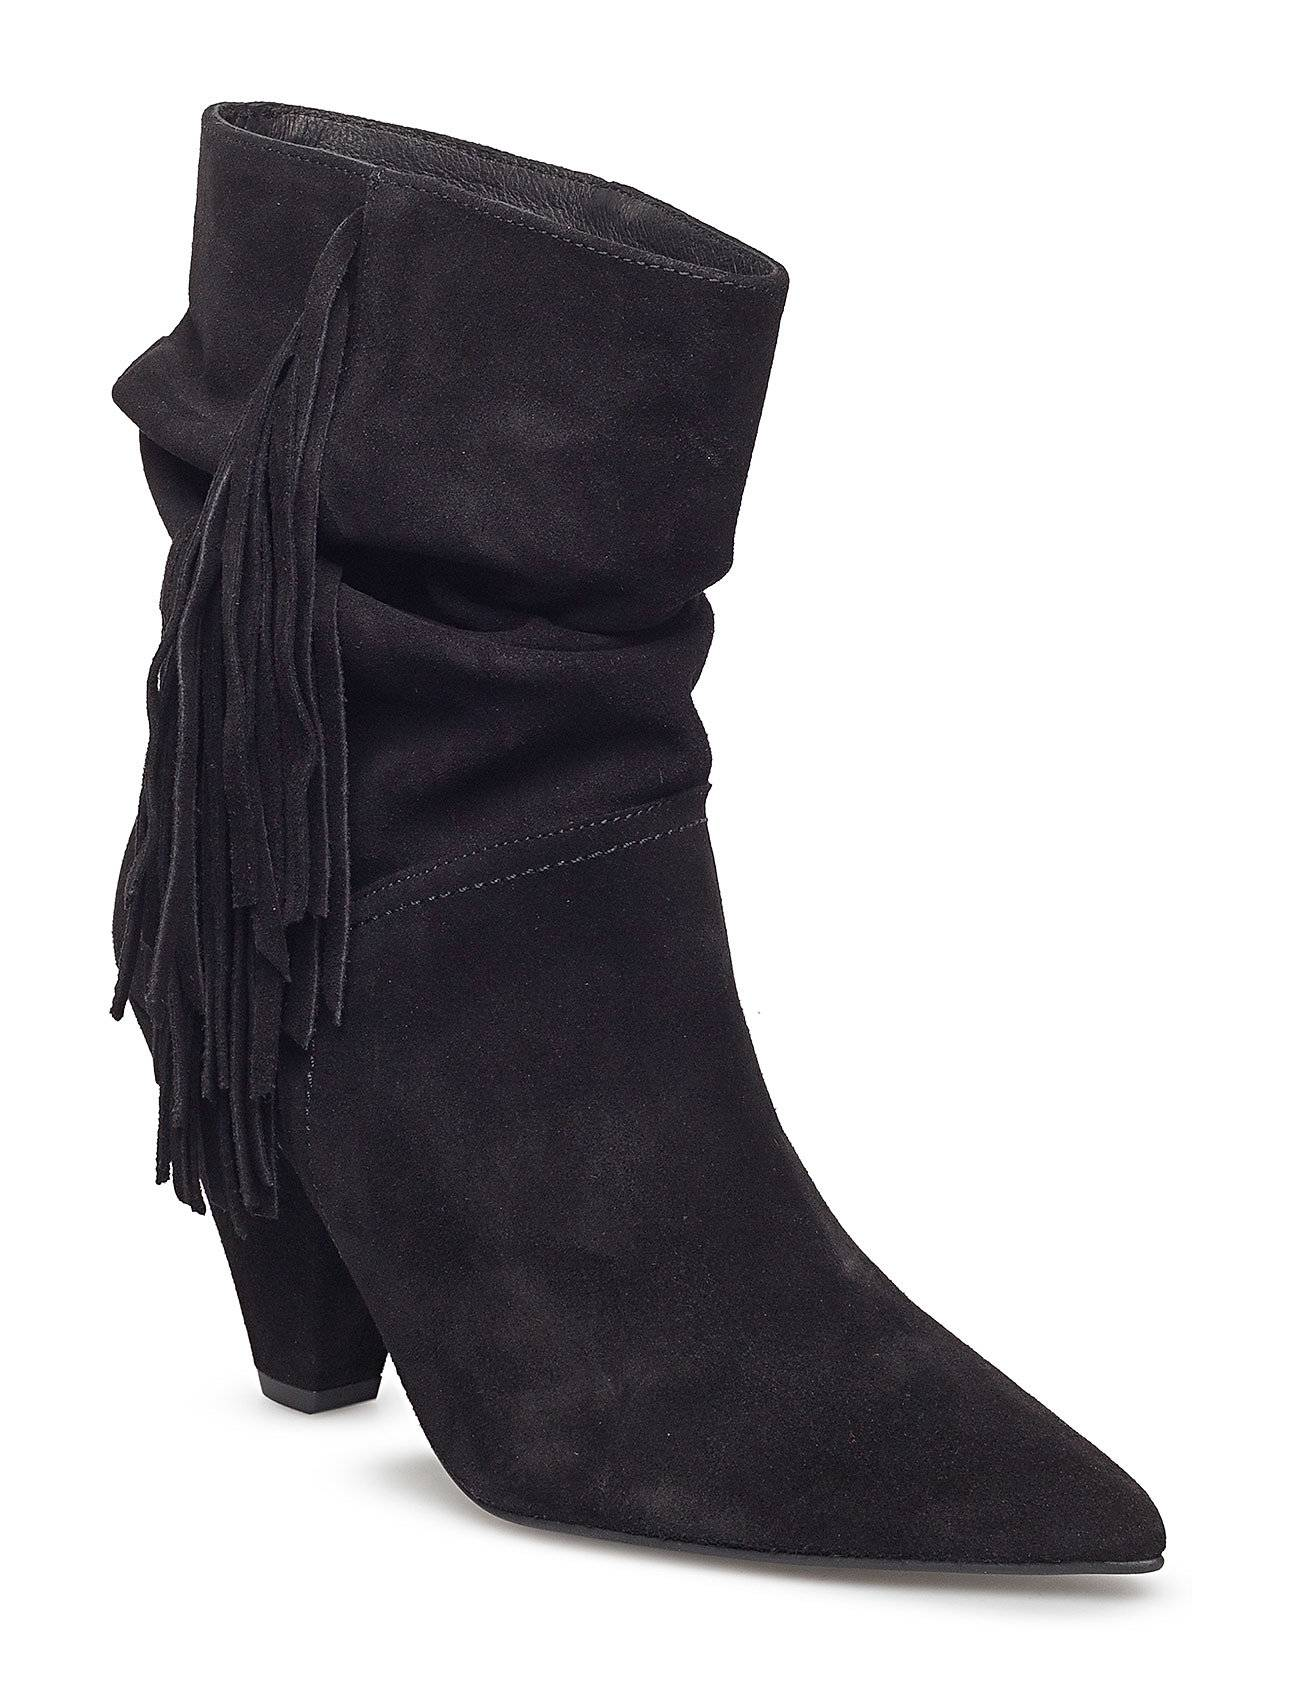 Henry Kole Amy Shoes Boots Ankle Boots Ankle Boots With Heel Musta Henry Kole